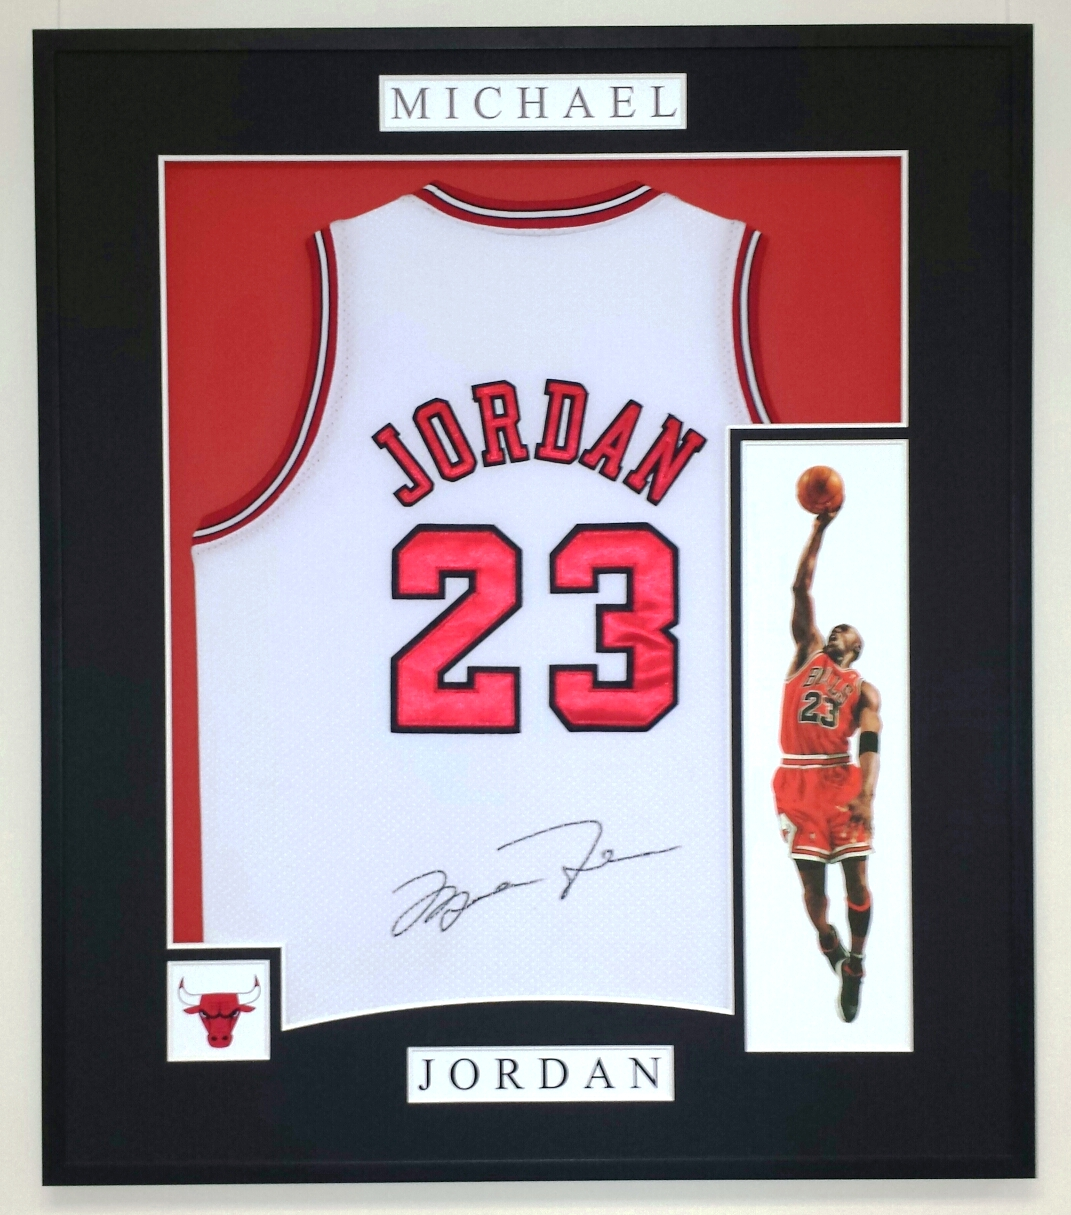 Sports Memorabilia | Elite Framing